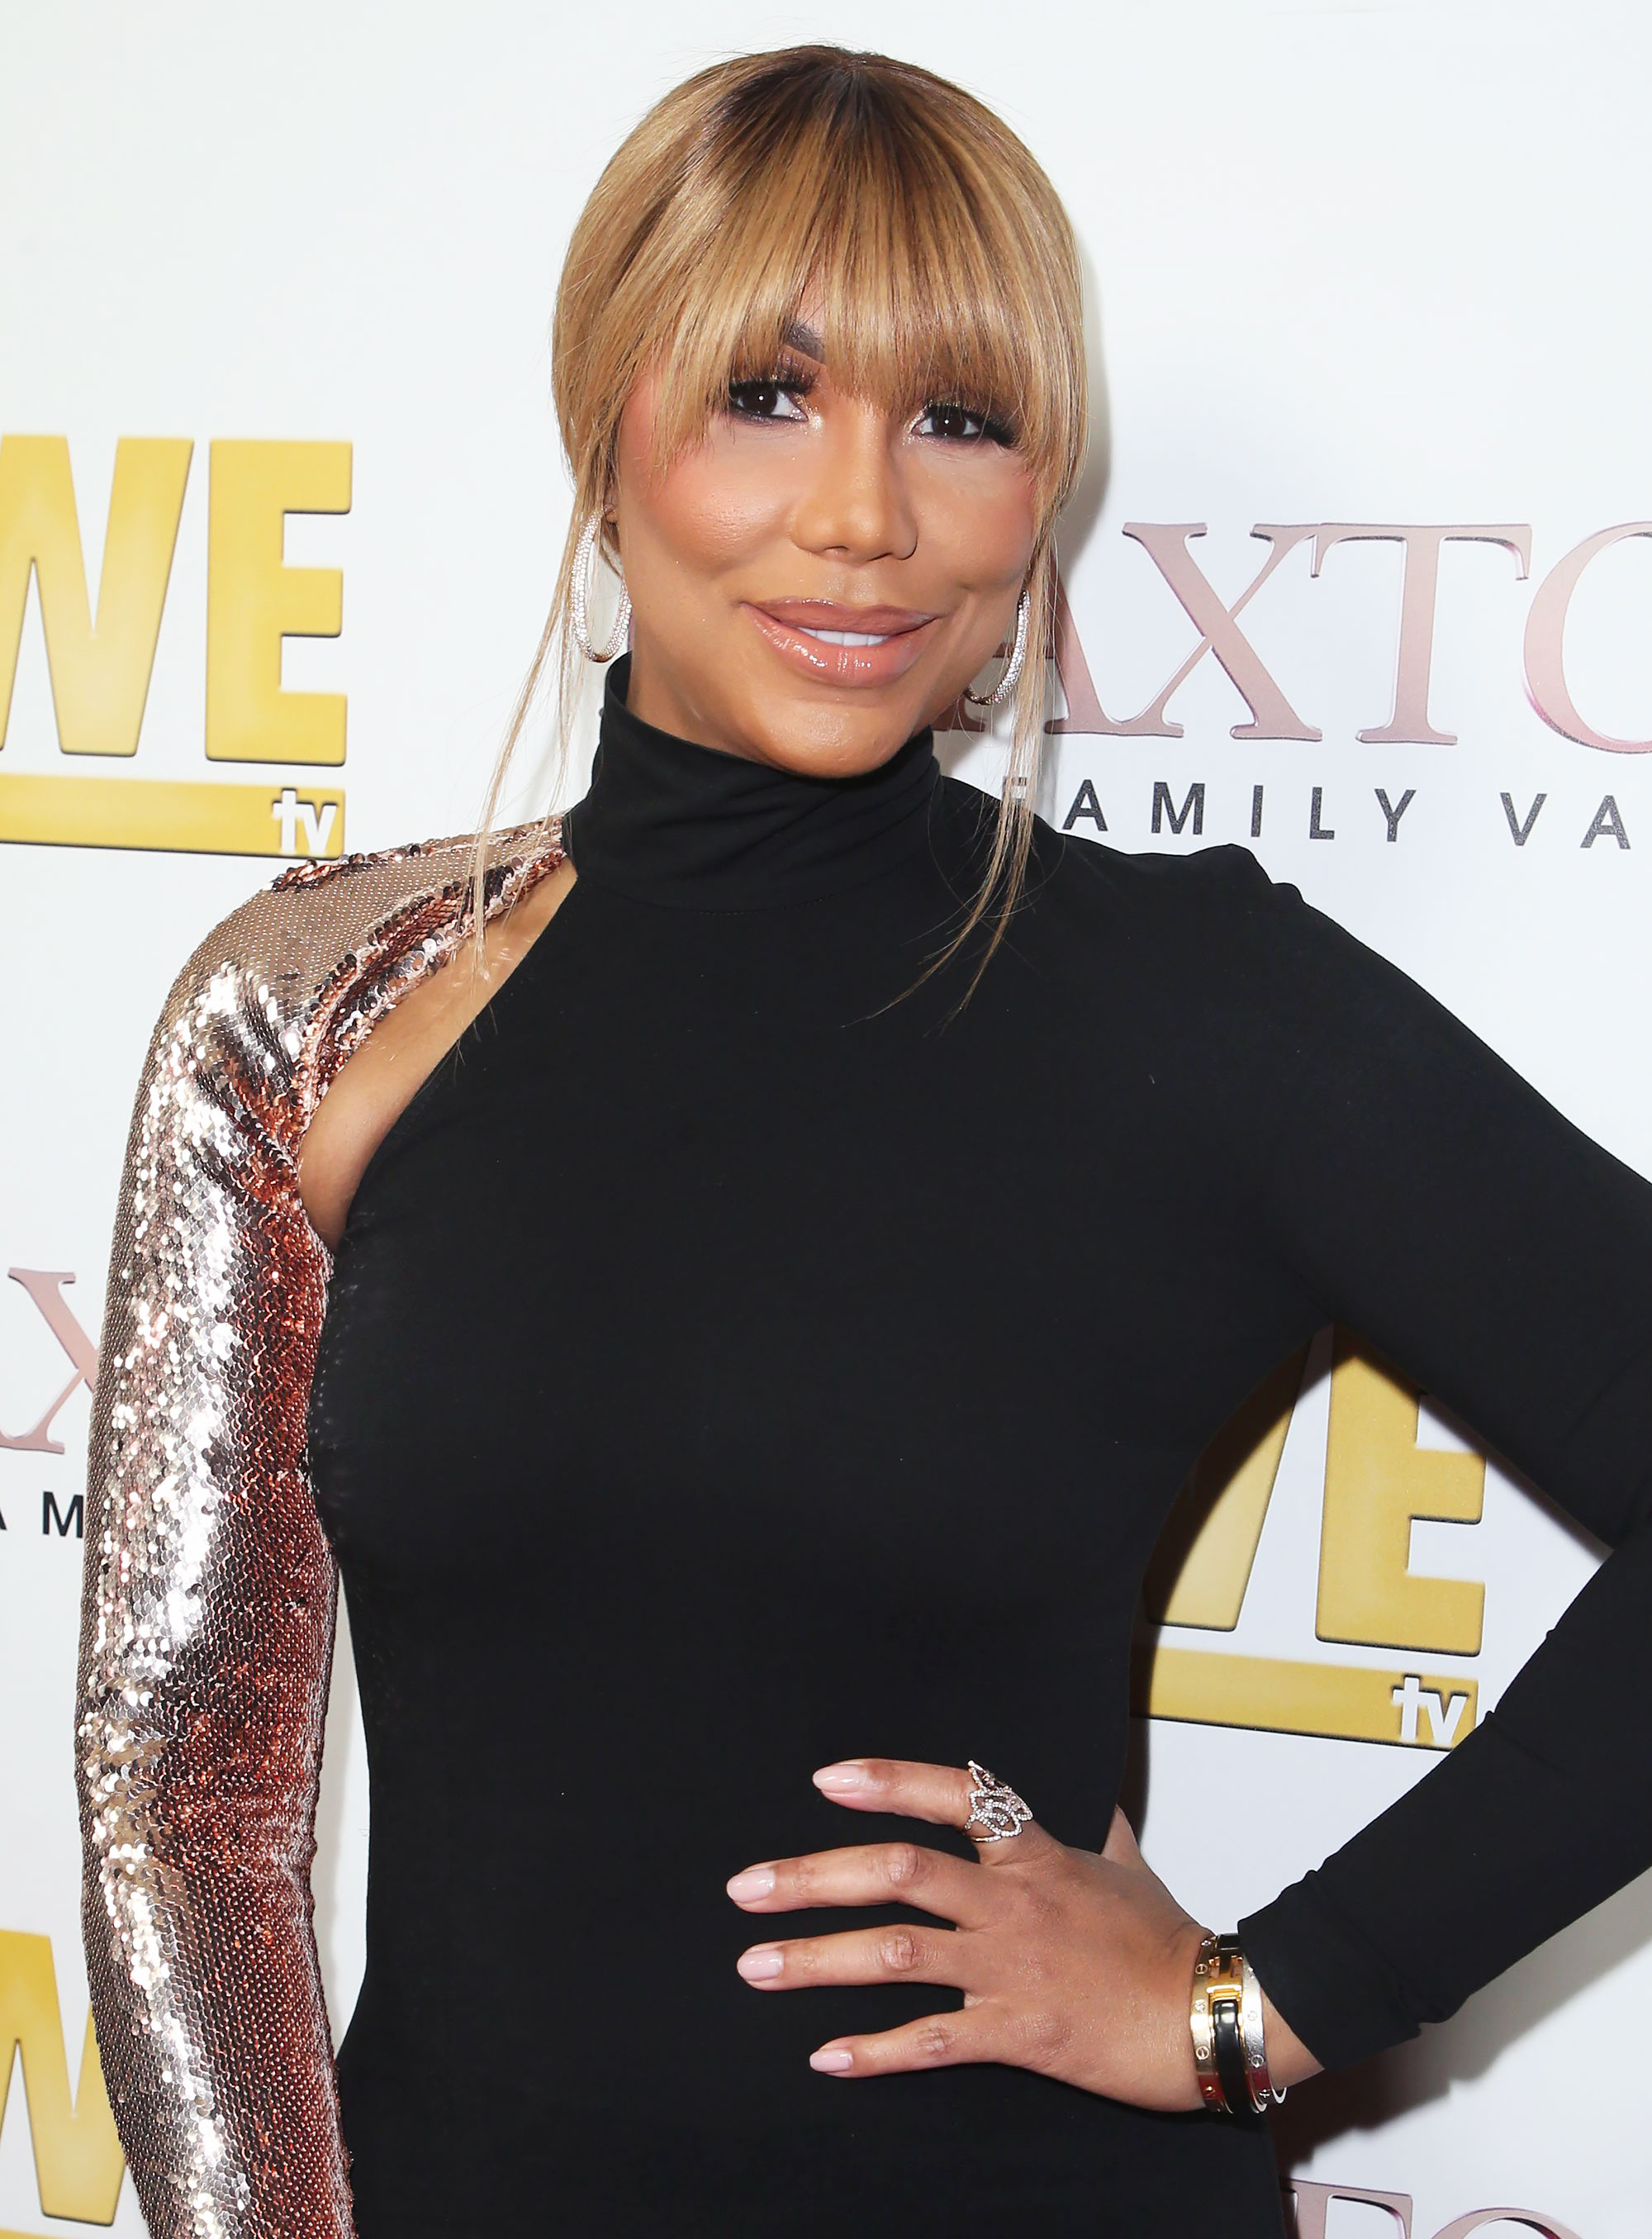 Tamar Braxton Hospitalized for 'Possible Overdose' After 'Tough and Emotional Day'